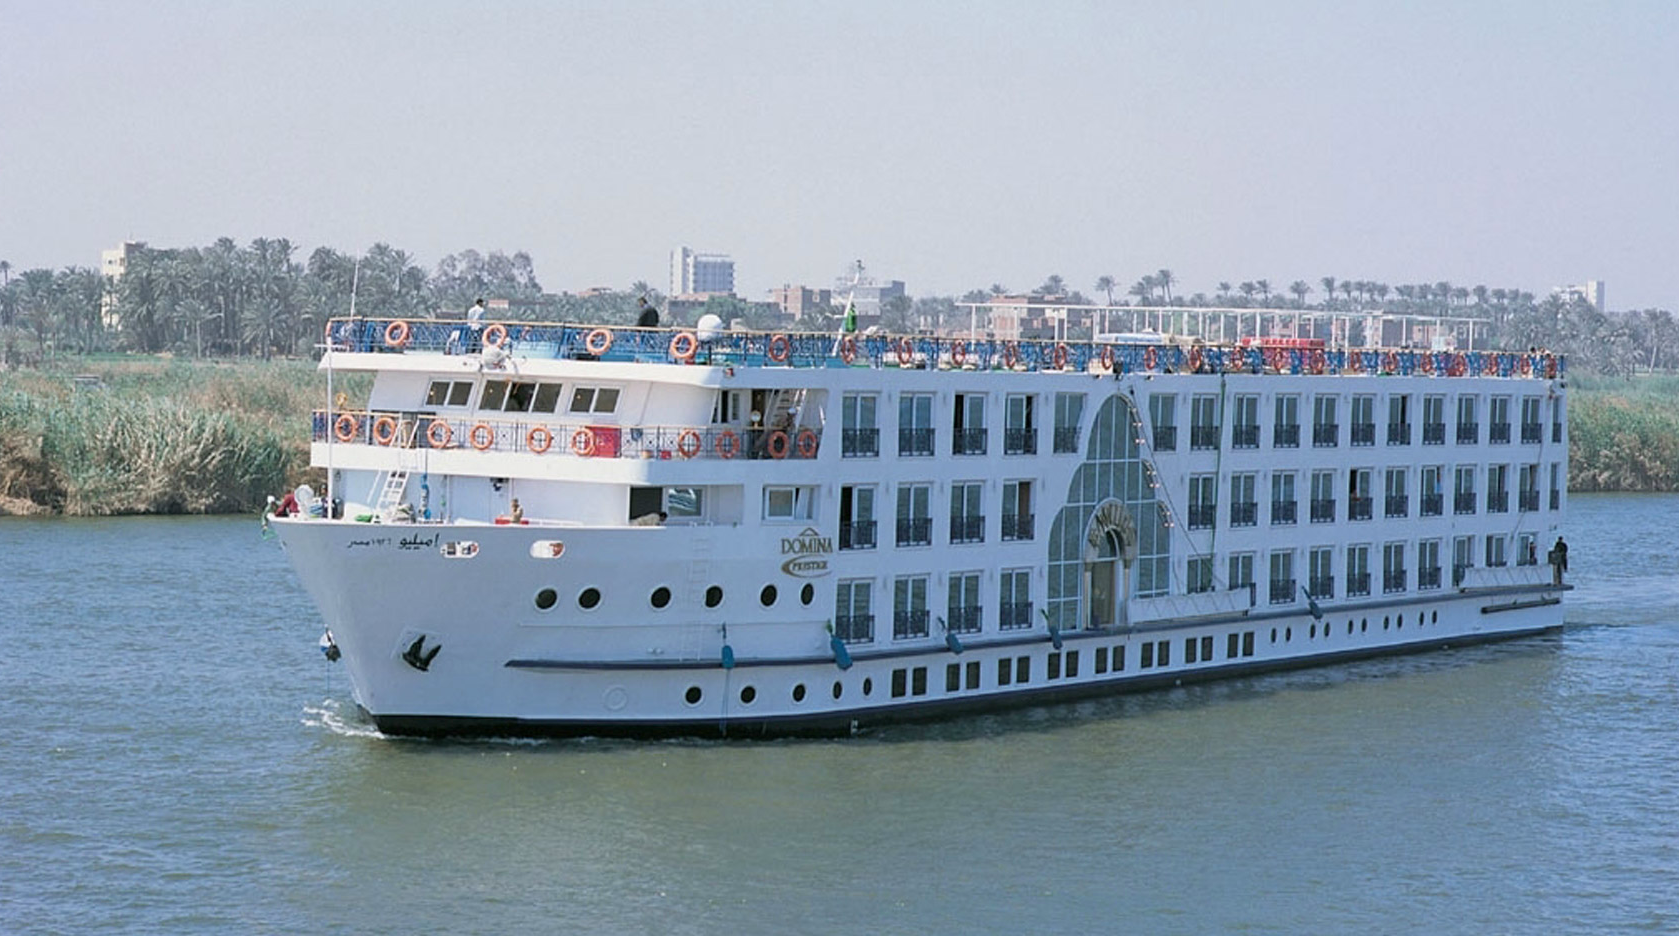 Orbital Travel The Nile Cruise Specialist Announce 5 Star